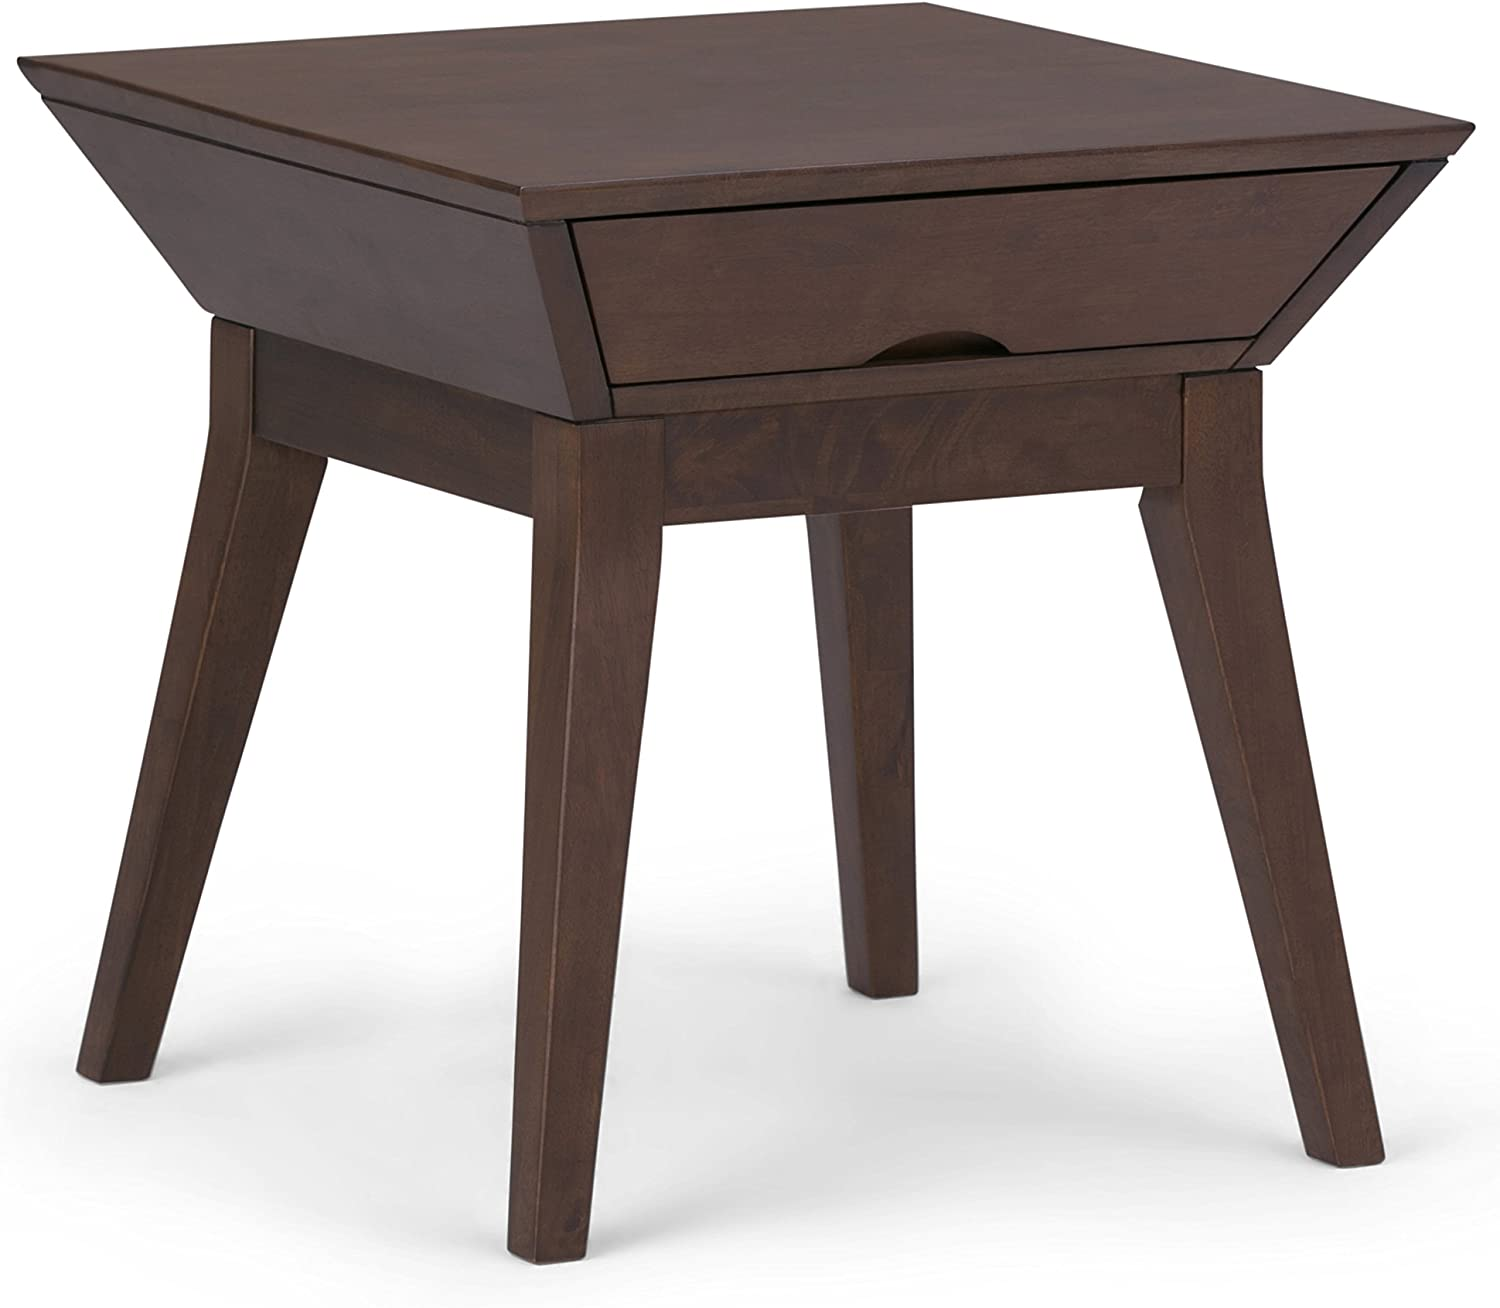 Simpli Home AXCTSA-02 Tessa Solid Hardwood 22 inch Wide Square Contemporary End Side Table in Walnut Brown